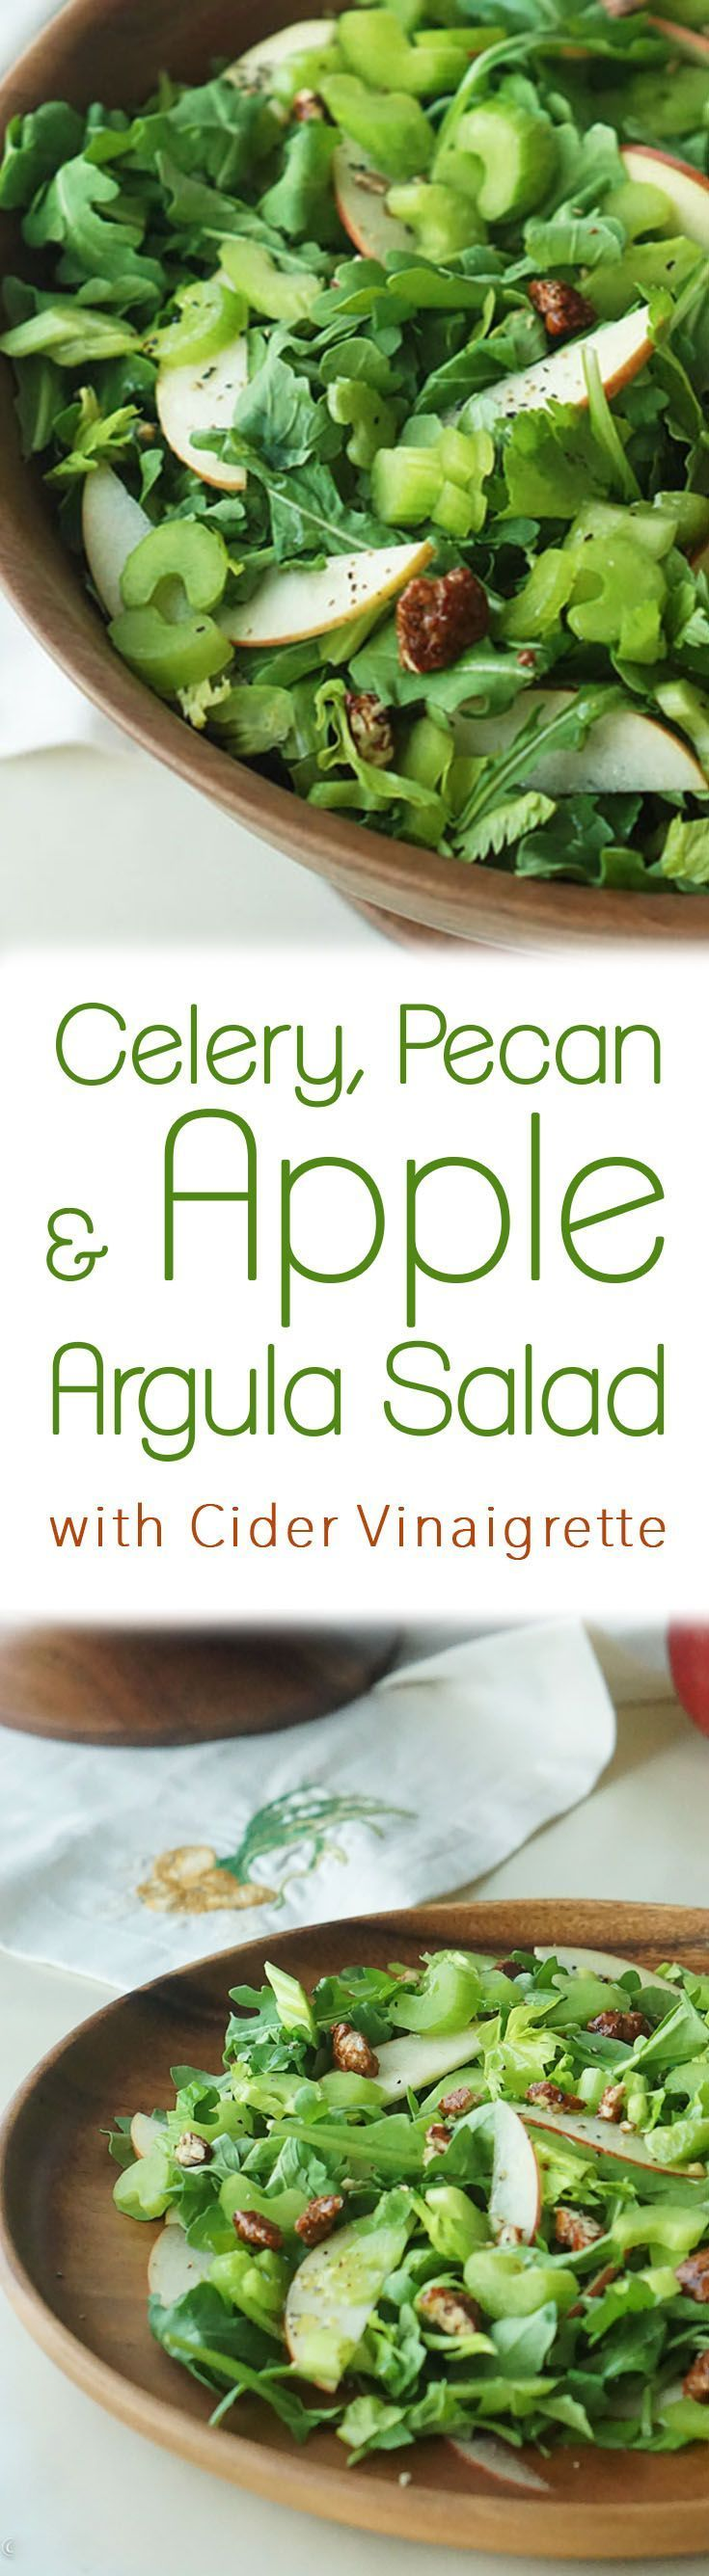 A healthy crunchy celery pecan apple and arugula salad with a cider vinaigrette that is low in fat and a perfect Thanksgiving side dish.